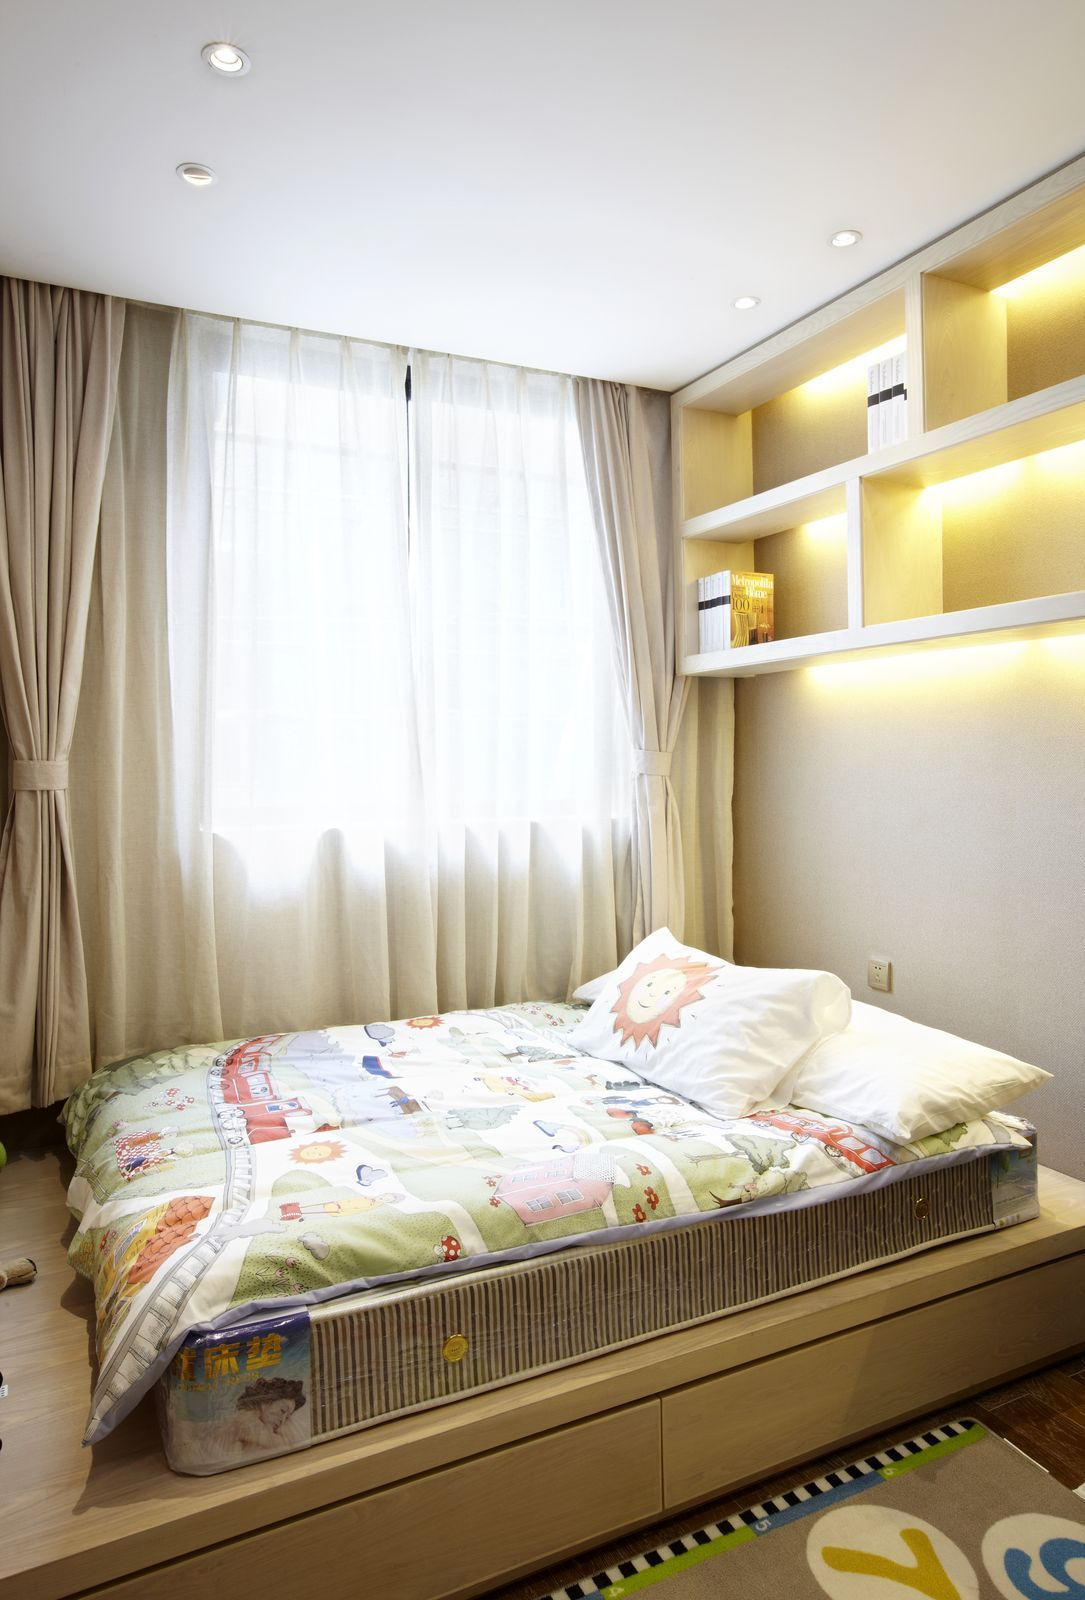 Sunlit Children's Bedroom with Light Favorable Colors